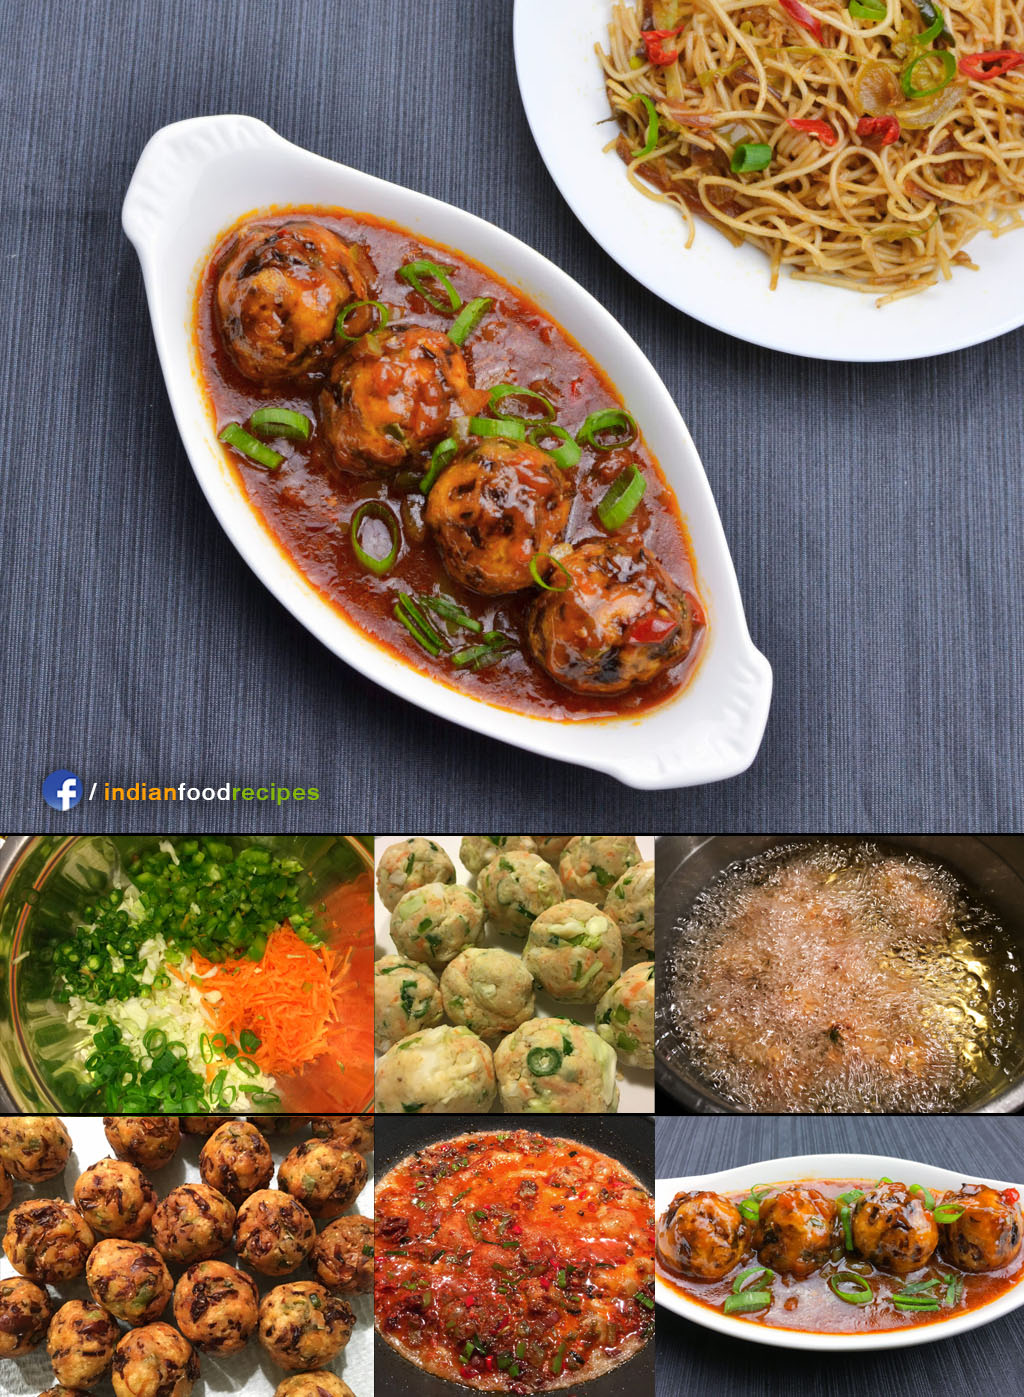 Veg manchurian recipe step by step indian food recipes veg manchurian recipe step by step forumfinder Image collections